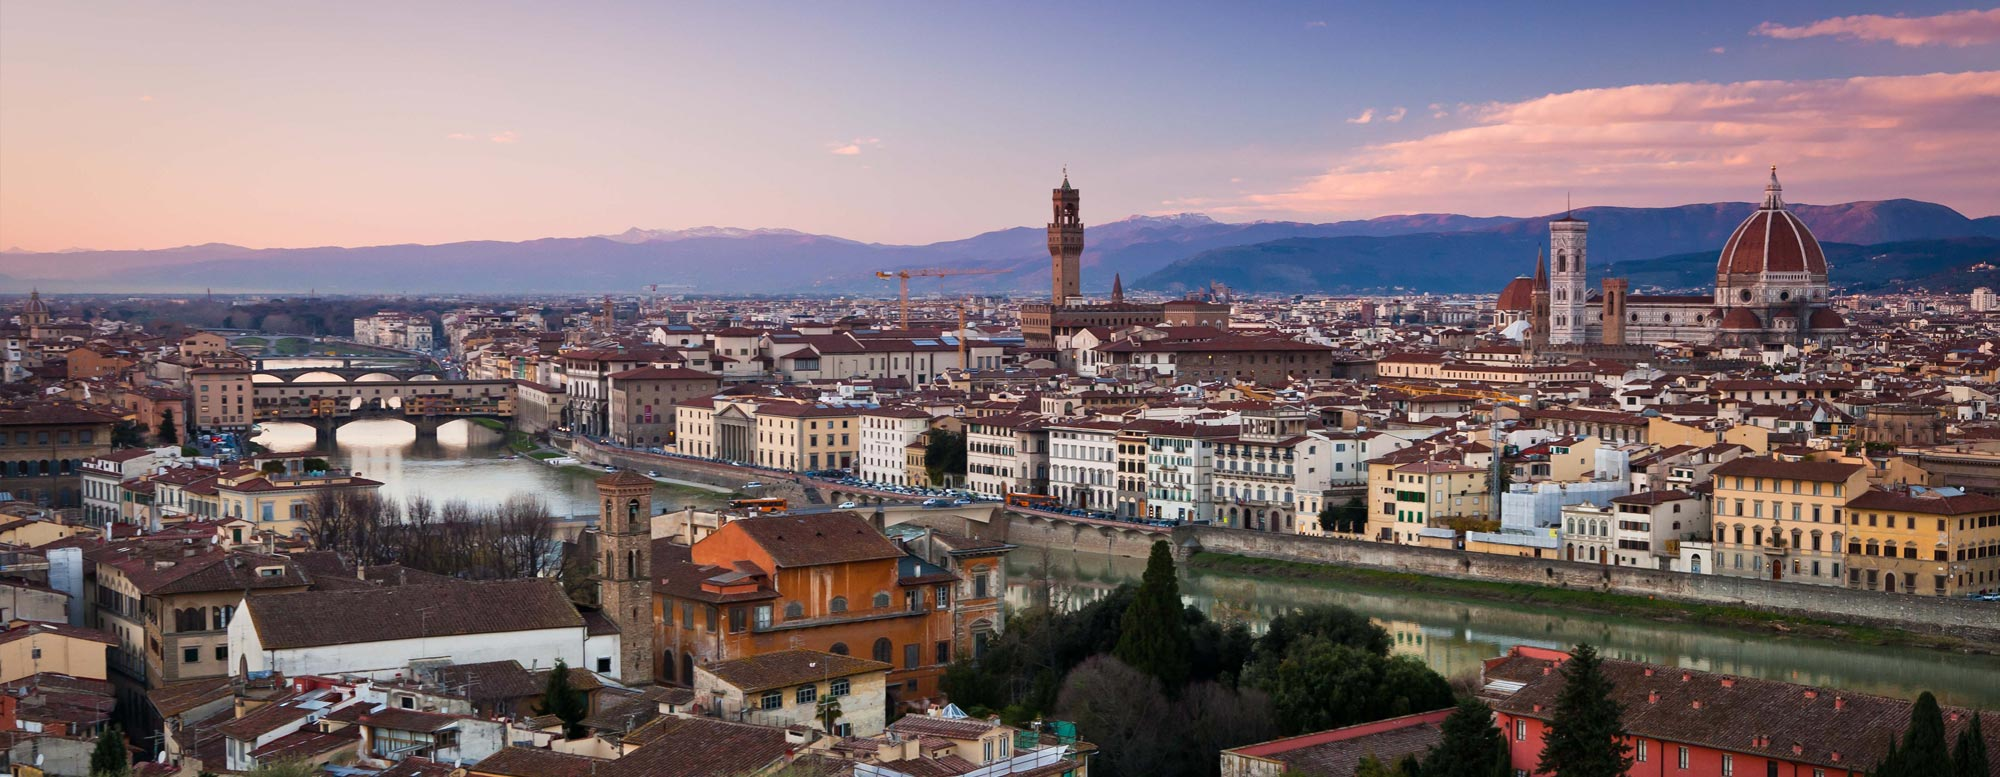 Universities in the city of Florence